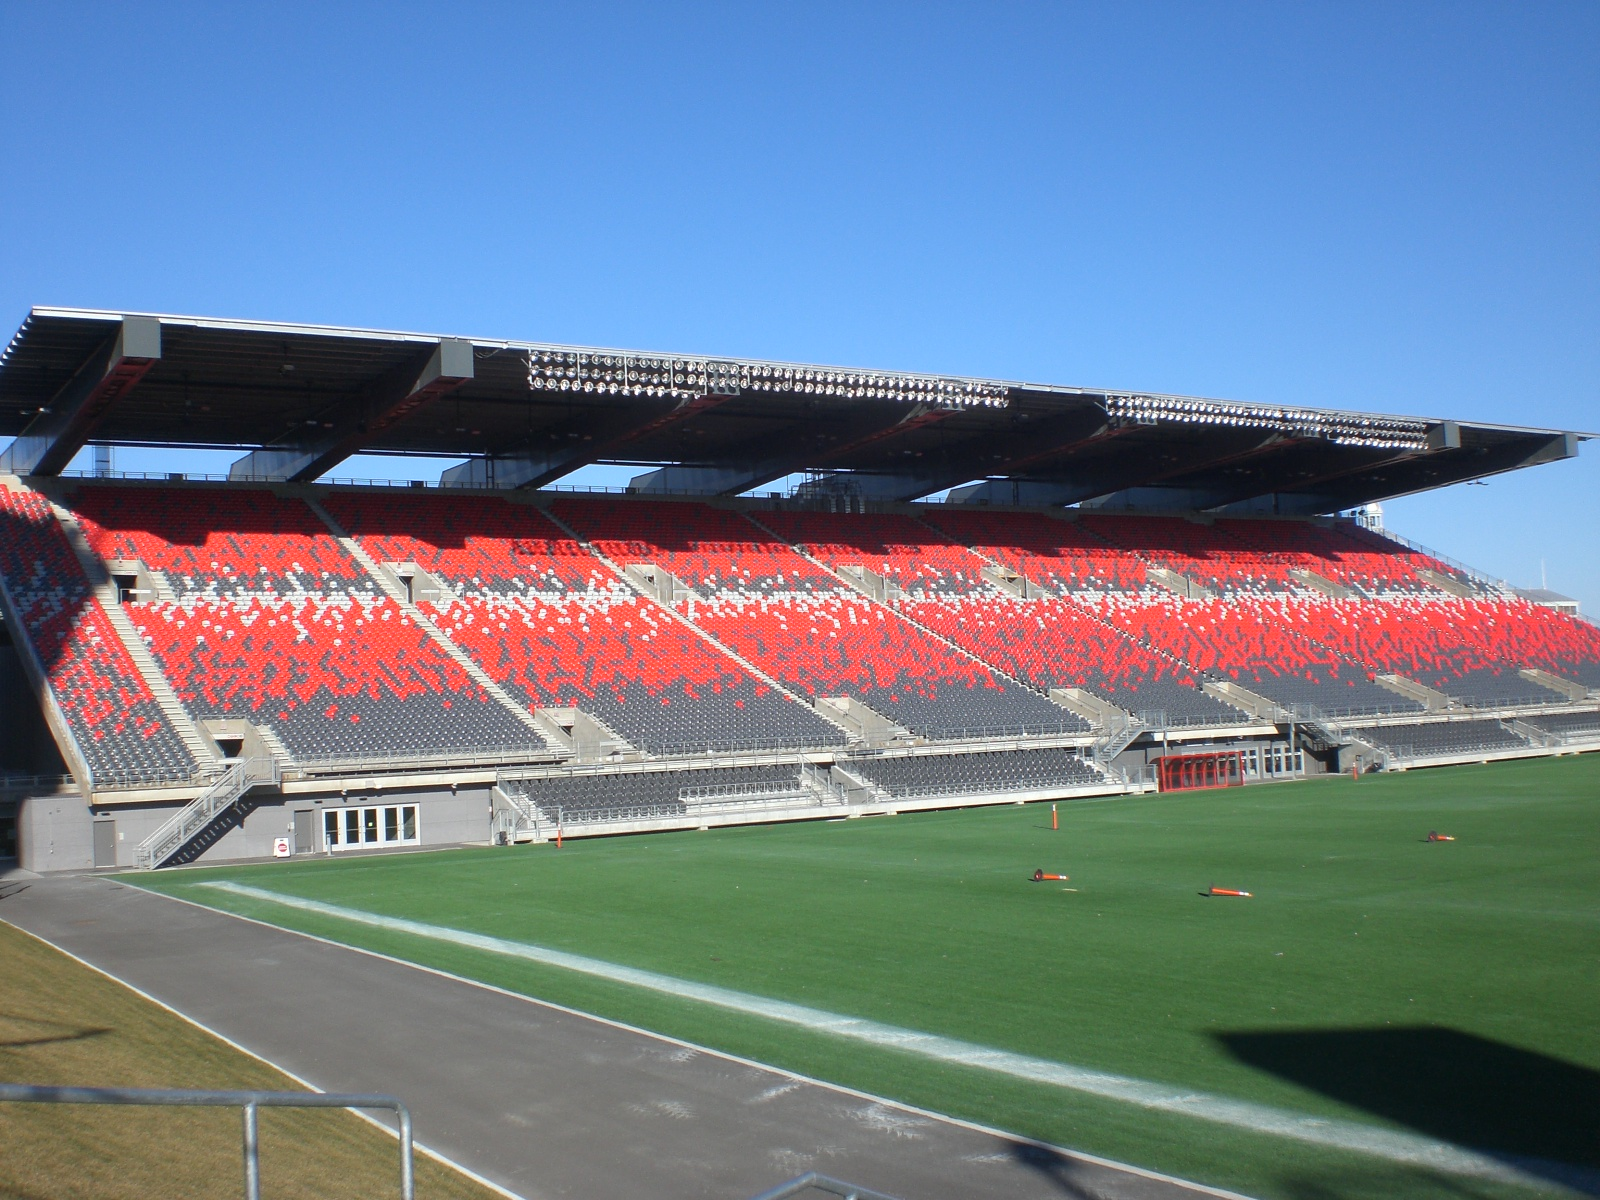 td place stadium wikipedia. Black Bedroom Furniture Sets. Home Design Ideas